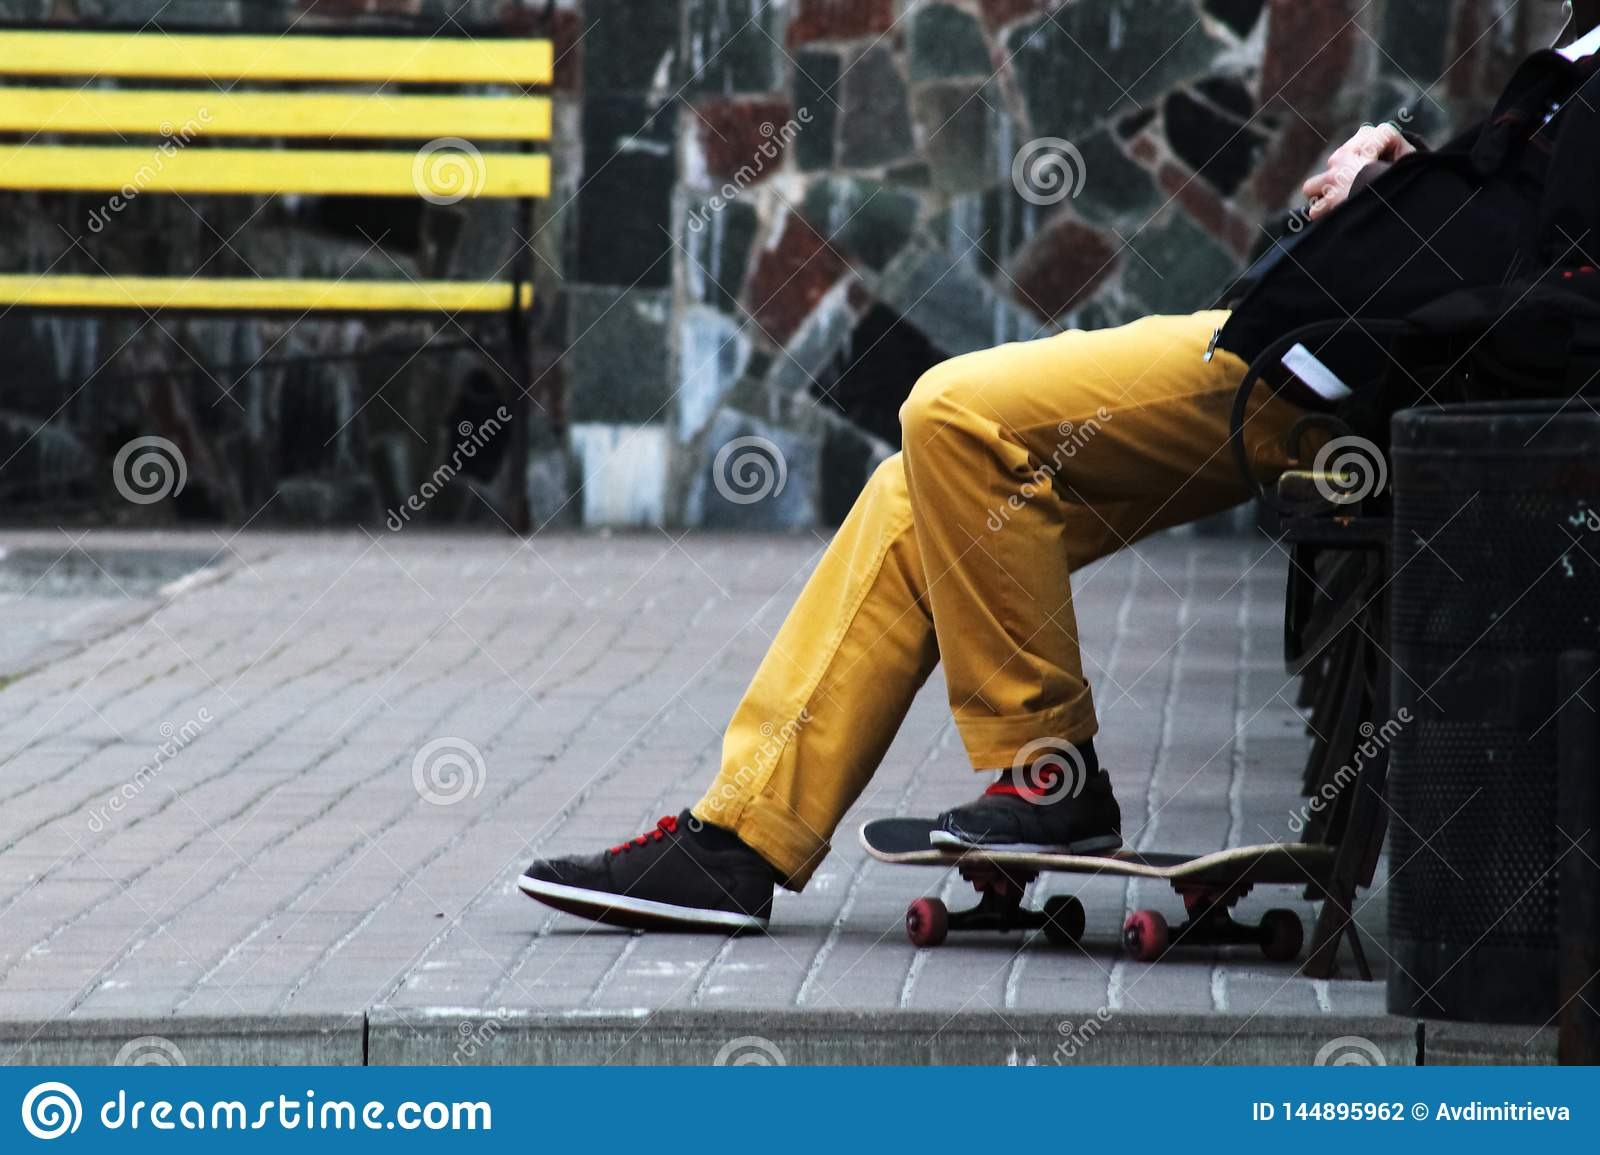 Lifestyle Relax Hipster Concept. Man Skateboarder in yellow jeans relaxing on bench. Yellow bench and stone background